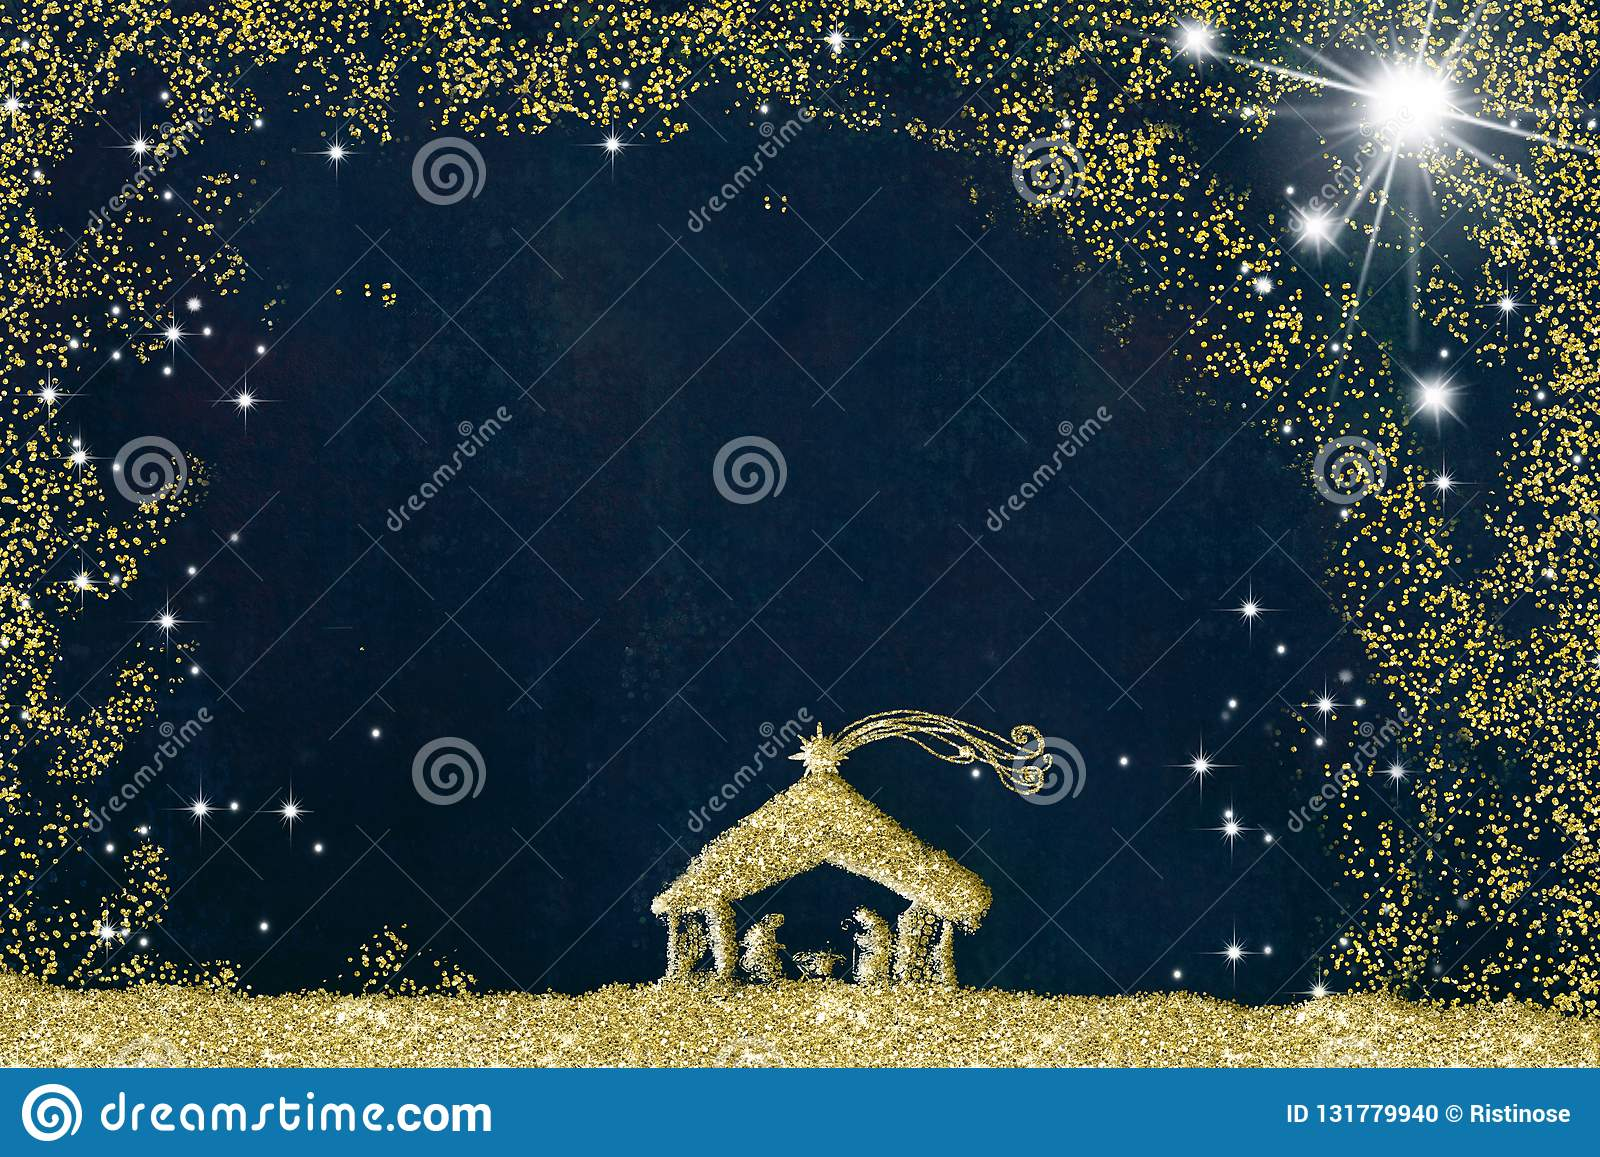 Christmas Nativity Scene Greetings Cards Abstract Freehand Drawing